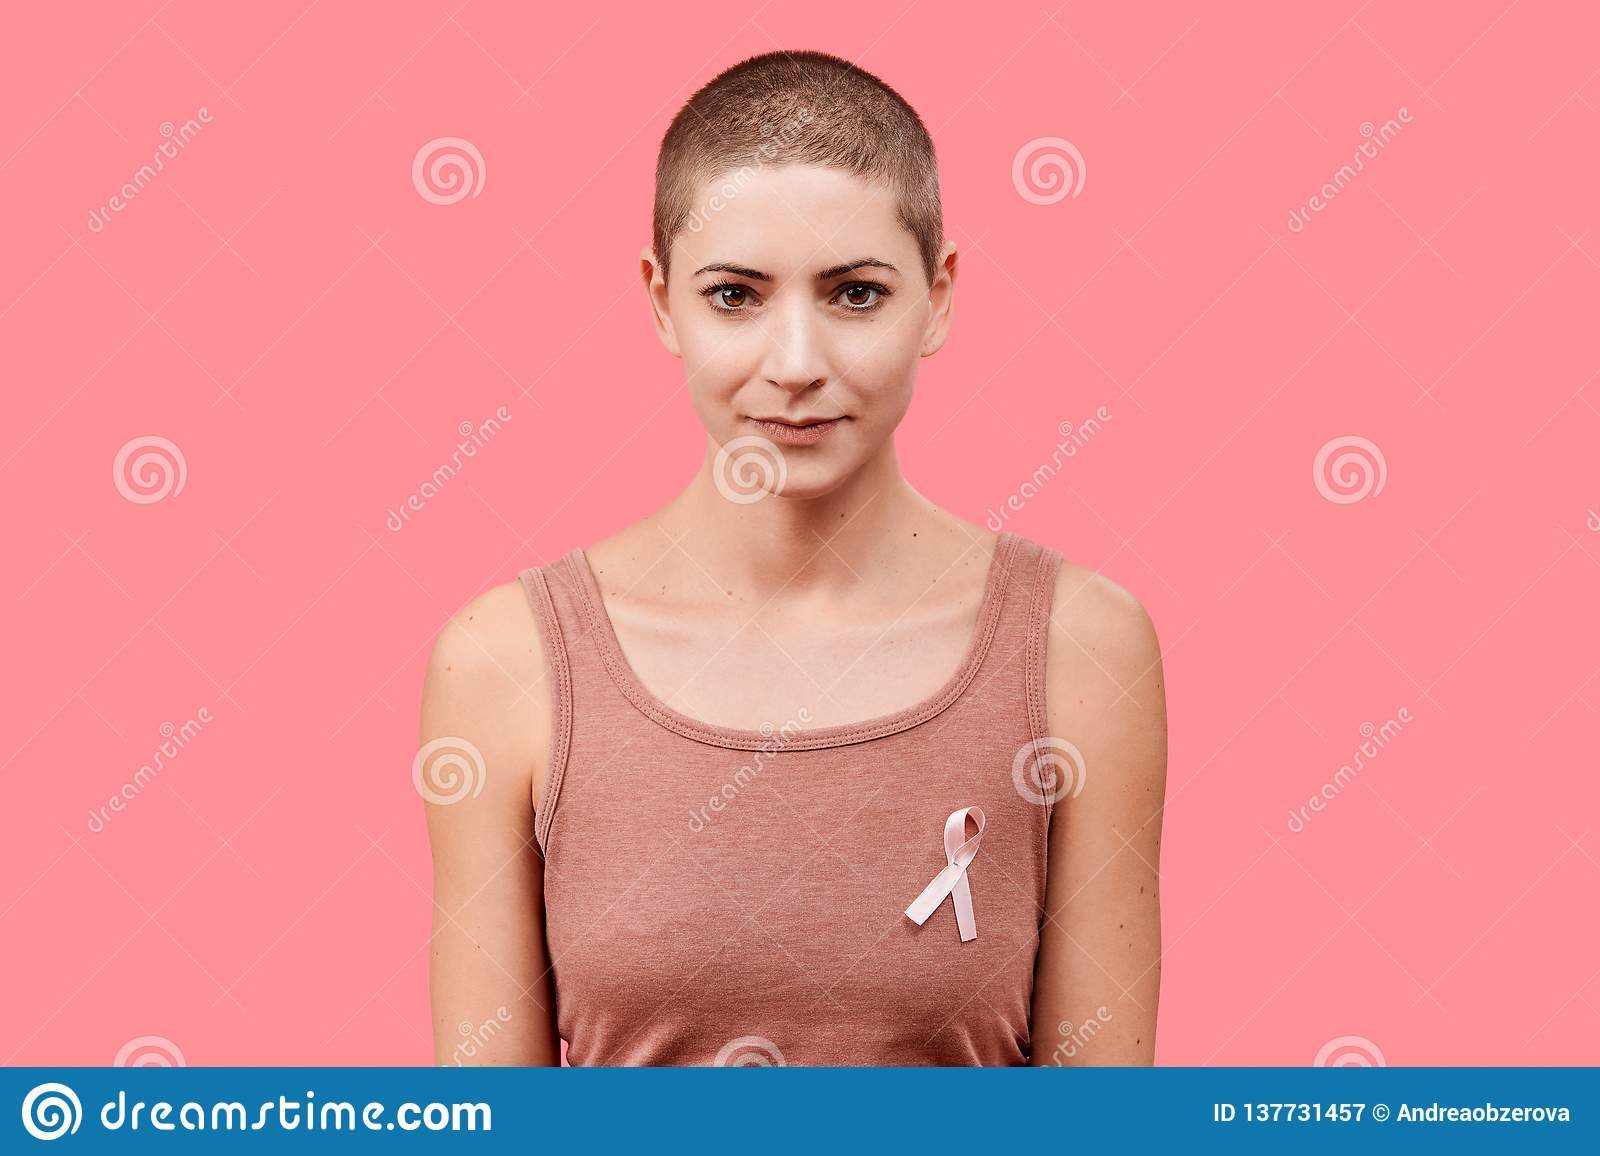 Smiling mid 30s woman, a cancer survivor, wearing pink breast cancer awareness ribbon, isolated over living coral background.